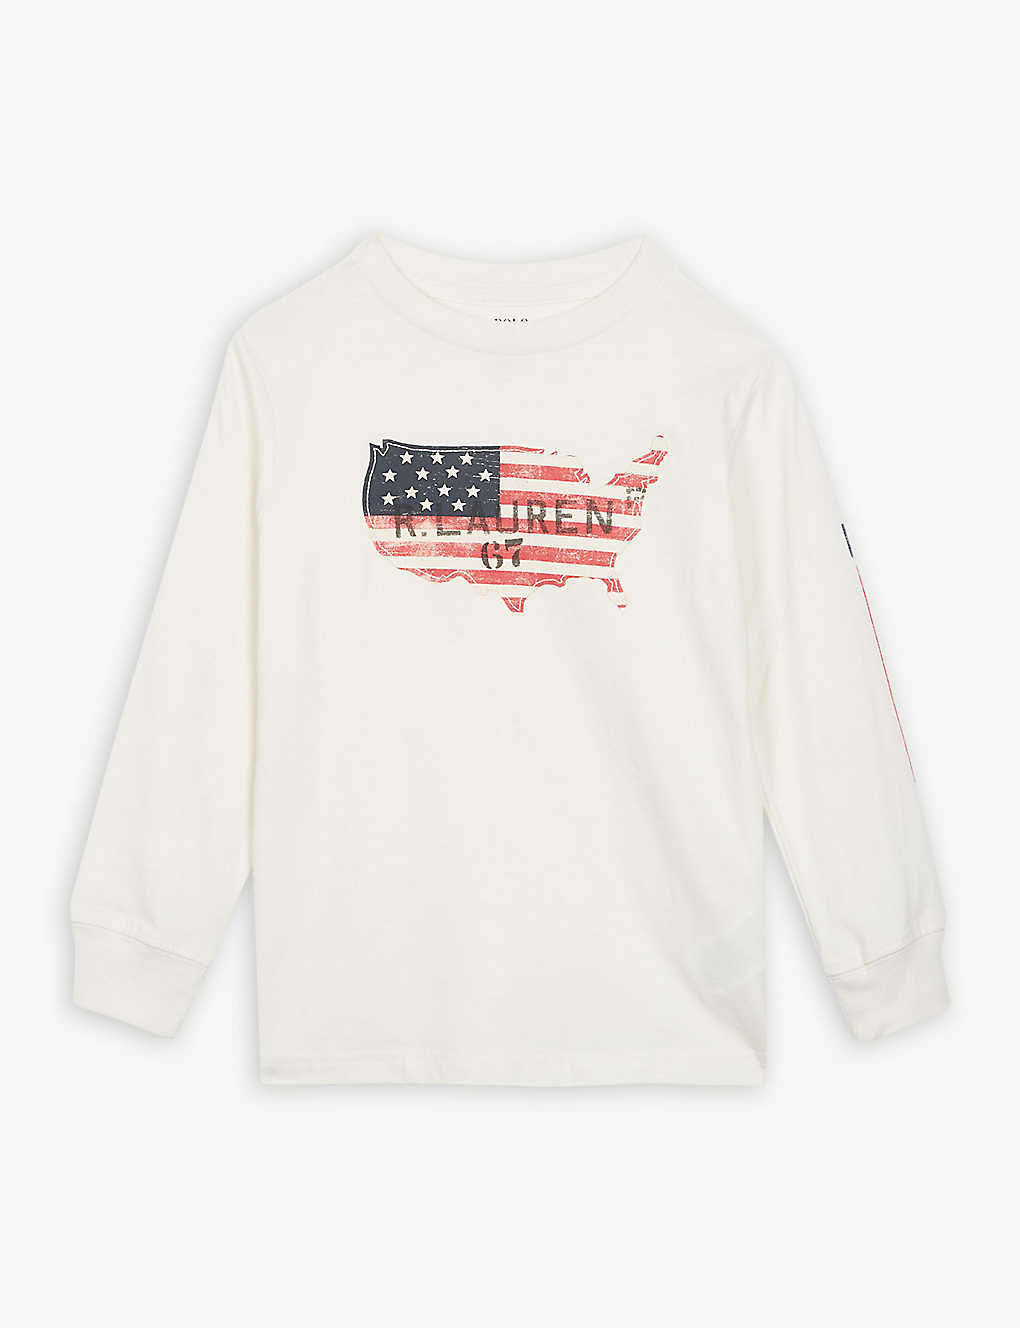 7a55e08883c RALPH LAUREN - Graphic American flag T-shirt 2-7 years